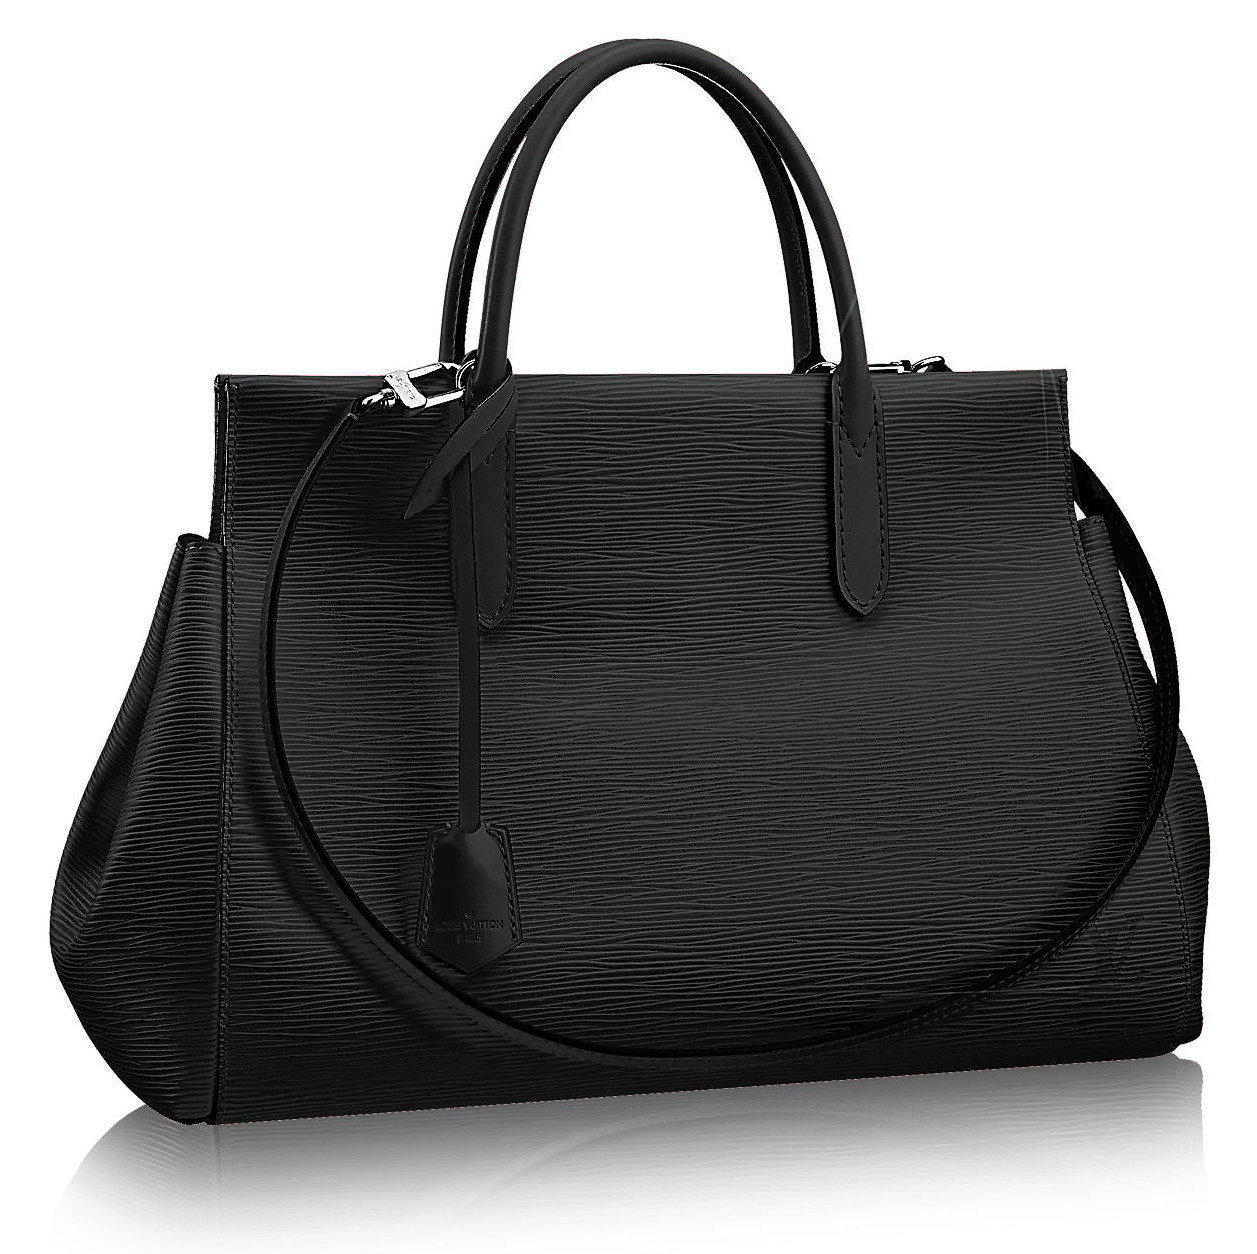 designer handbag for the office